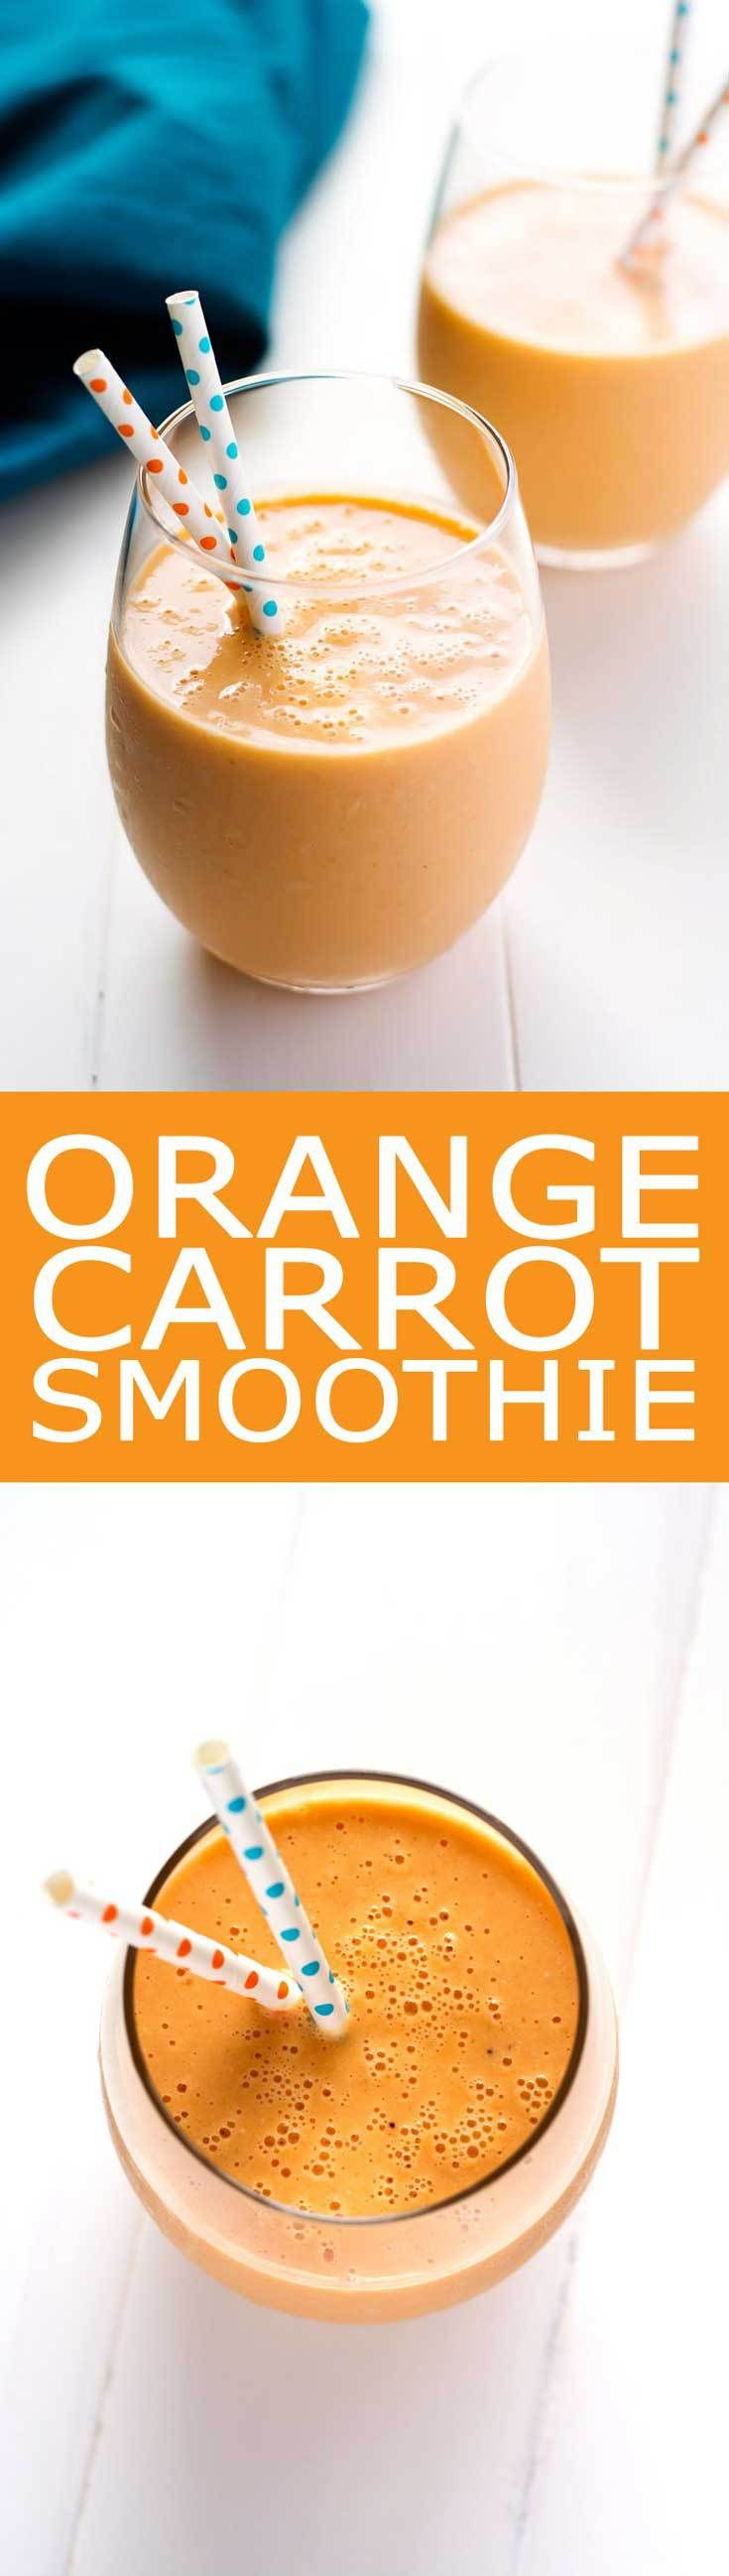 Healthy Orange Carrot Smoothie with pineapple and oats! | Kitchen Gidget